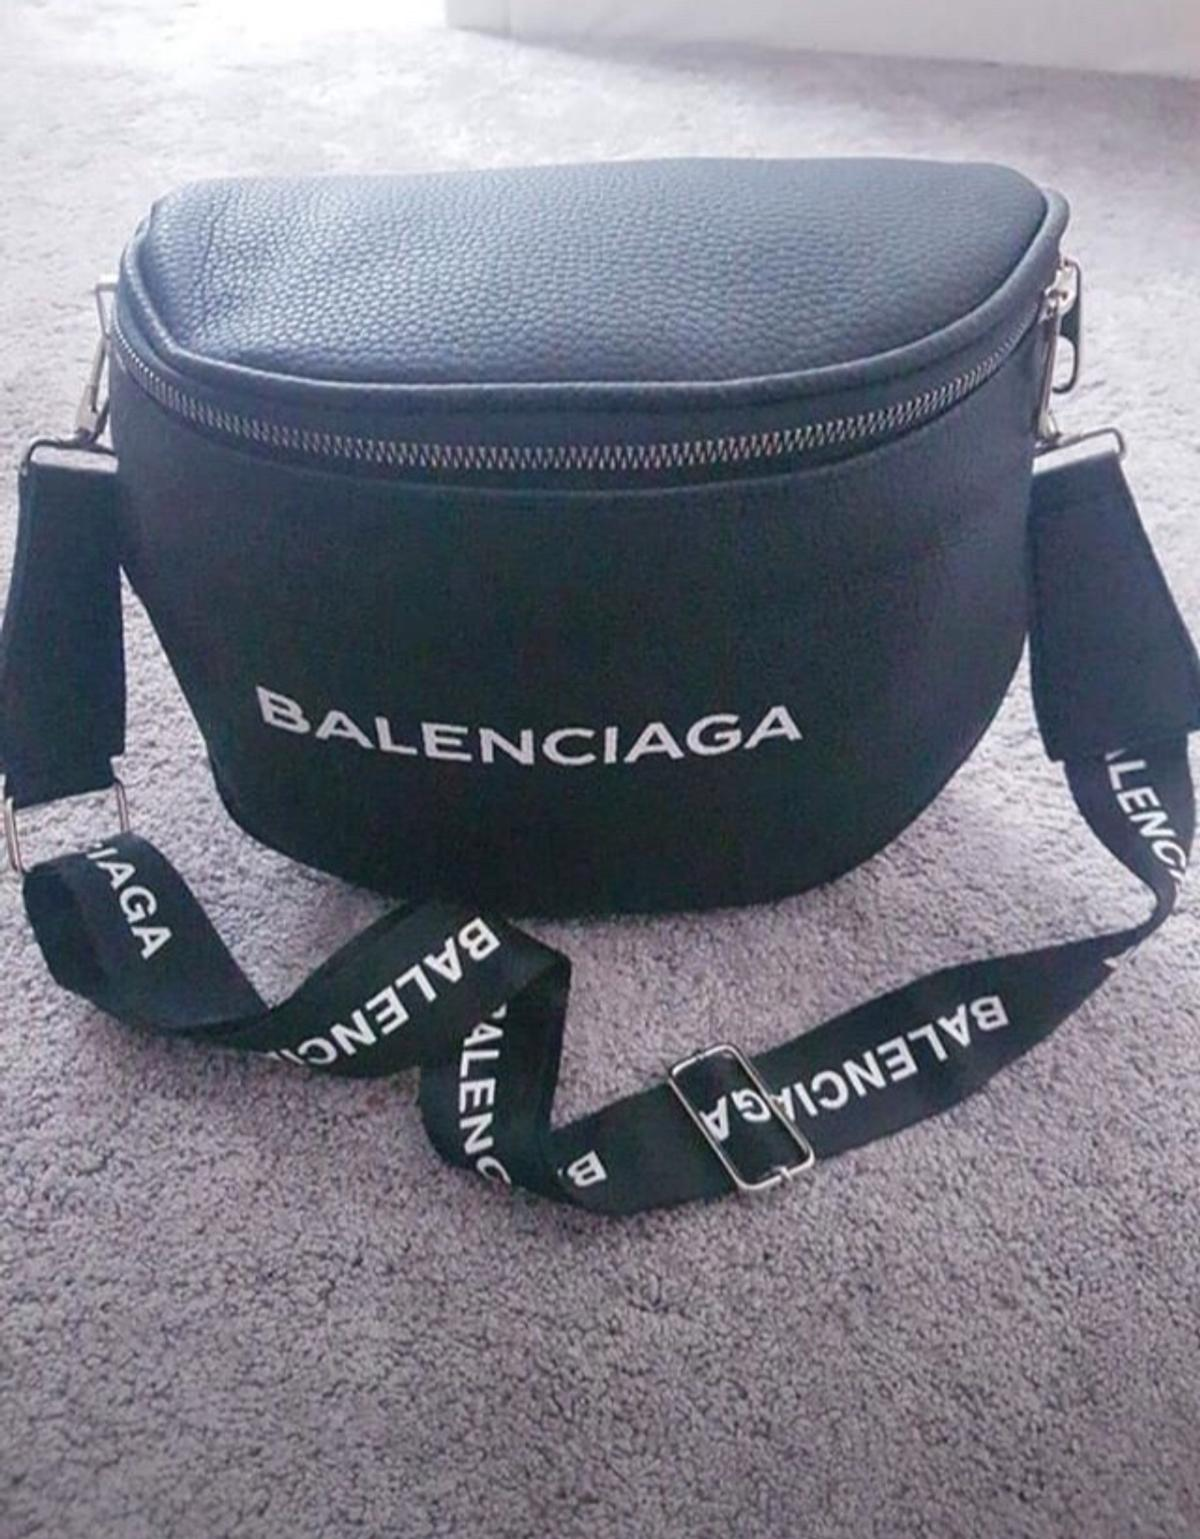 new appearance great discount sale new images of Balenciaga fanny/bum bag